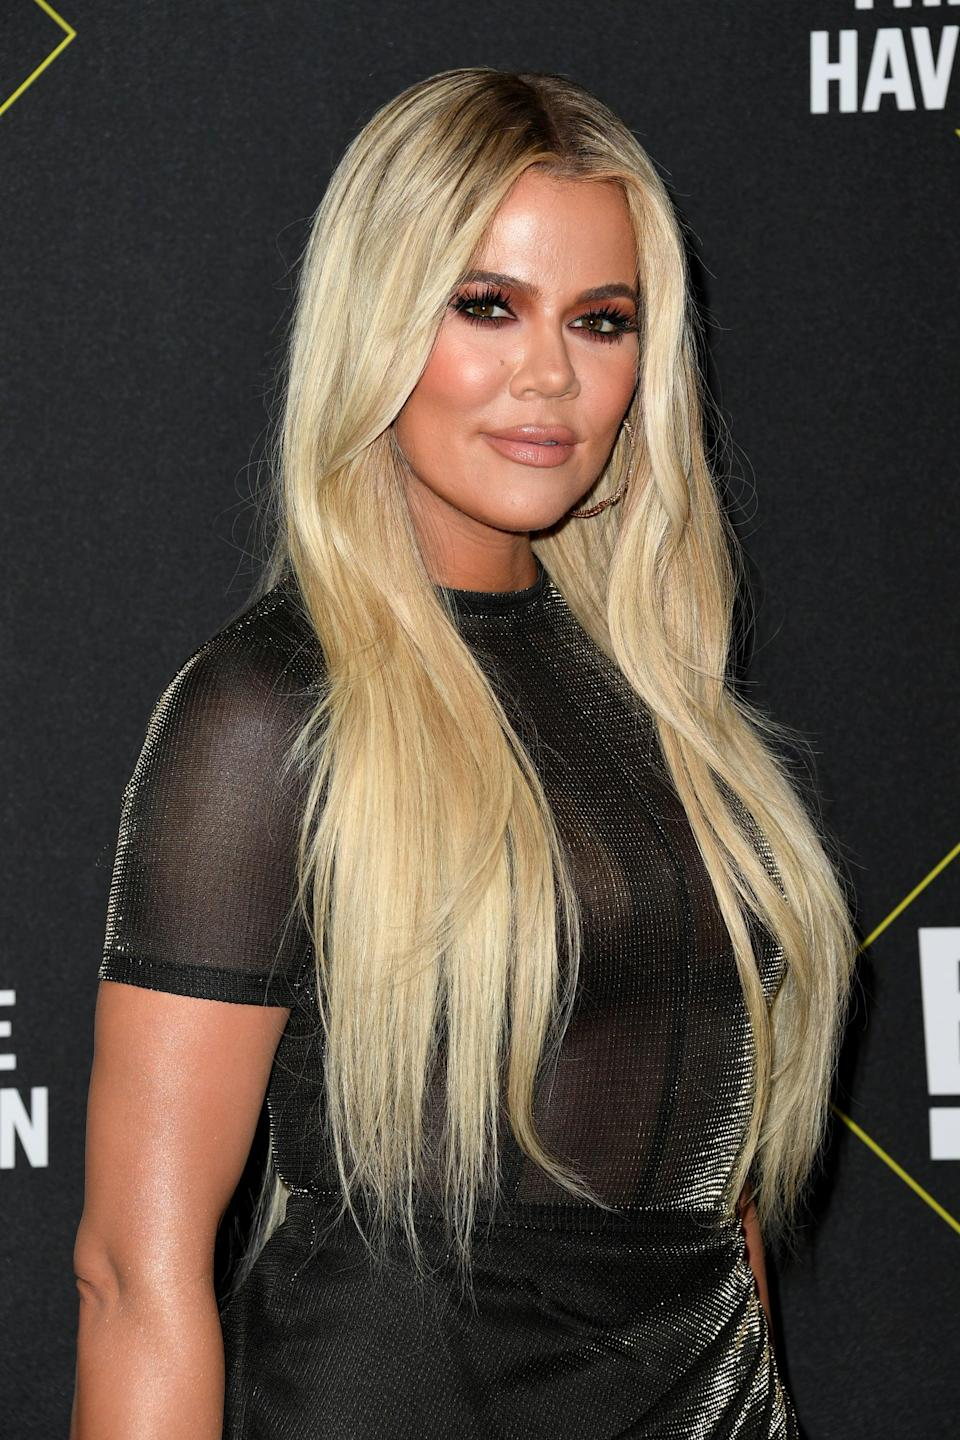 """<p>Back in 2017, the reality star and Good American founder shared a series of Snapchat videos showing herself in the process of <a href=""""https://www.etonline.com/news/211771_khloe_kardashian_gets_tattoo_honoring_her_late_father_removed_as_sister_kim_mocks_her"""" class=""""link rapid-noclick-resp"""" rel=""""nofollow noopener"""" target=""""_blank"""" data-ylk=""""slk:removing a lower-back tattoo"""">removing a lower-back tattoo</a> she got in honor of her late father, Robert Kardashian. According to <strong>ET</strong>, Kardashian got the tattoo when she was 16, and it features the word """"daddy"""" in cursive with a cross and angel wings.</p>"""